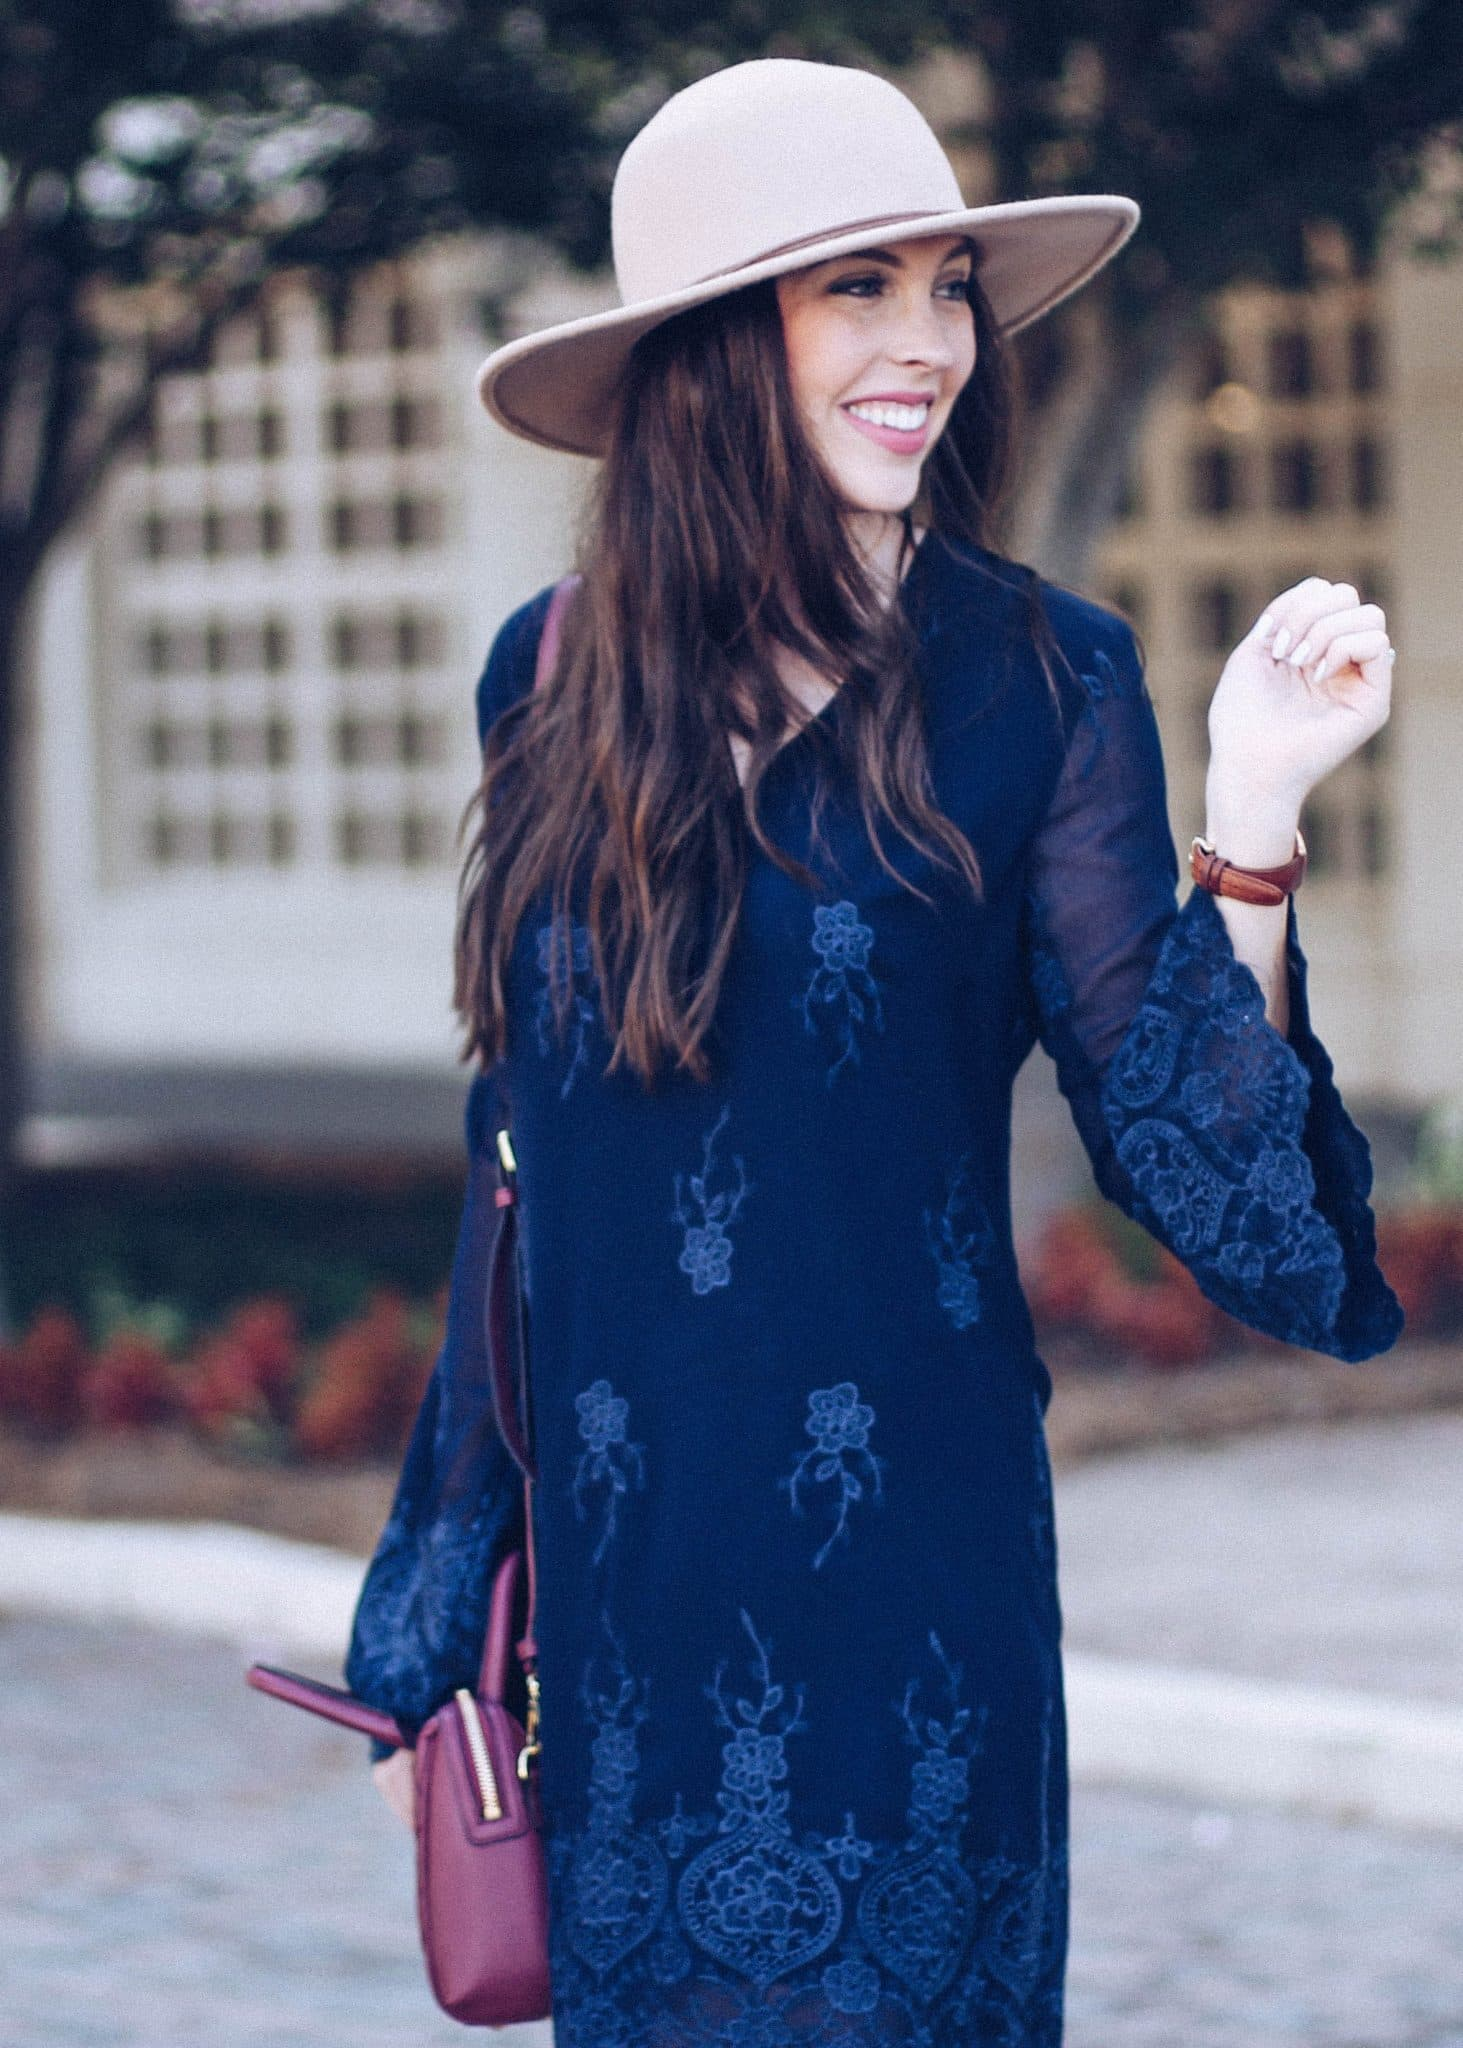 vera bradley quilted crossbody in claret, pretty in the pines blog, outfit idea for fall, embroidered lace bell sleeve dress, tan floppy hat